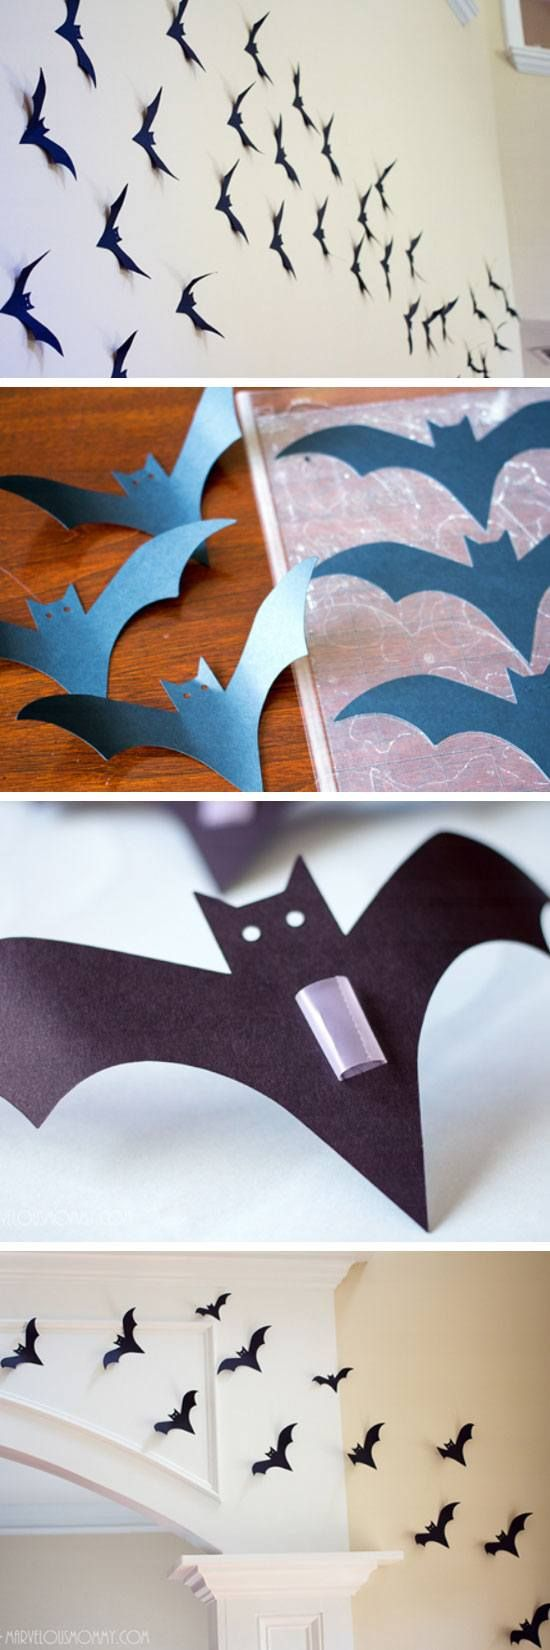 Diy Halloween Ideas Ensures A Devilish Air